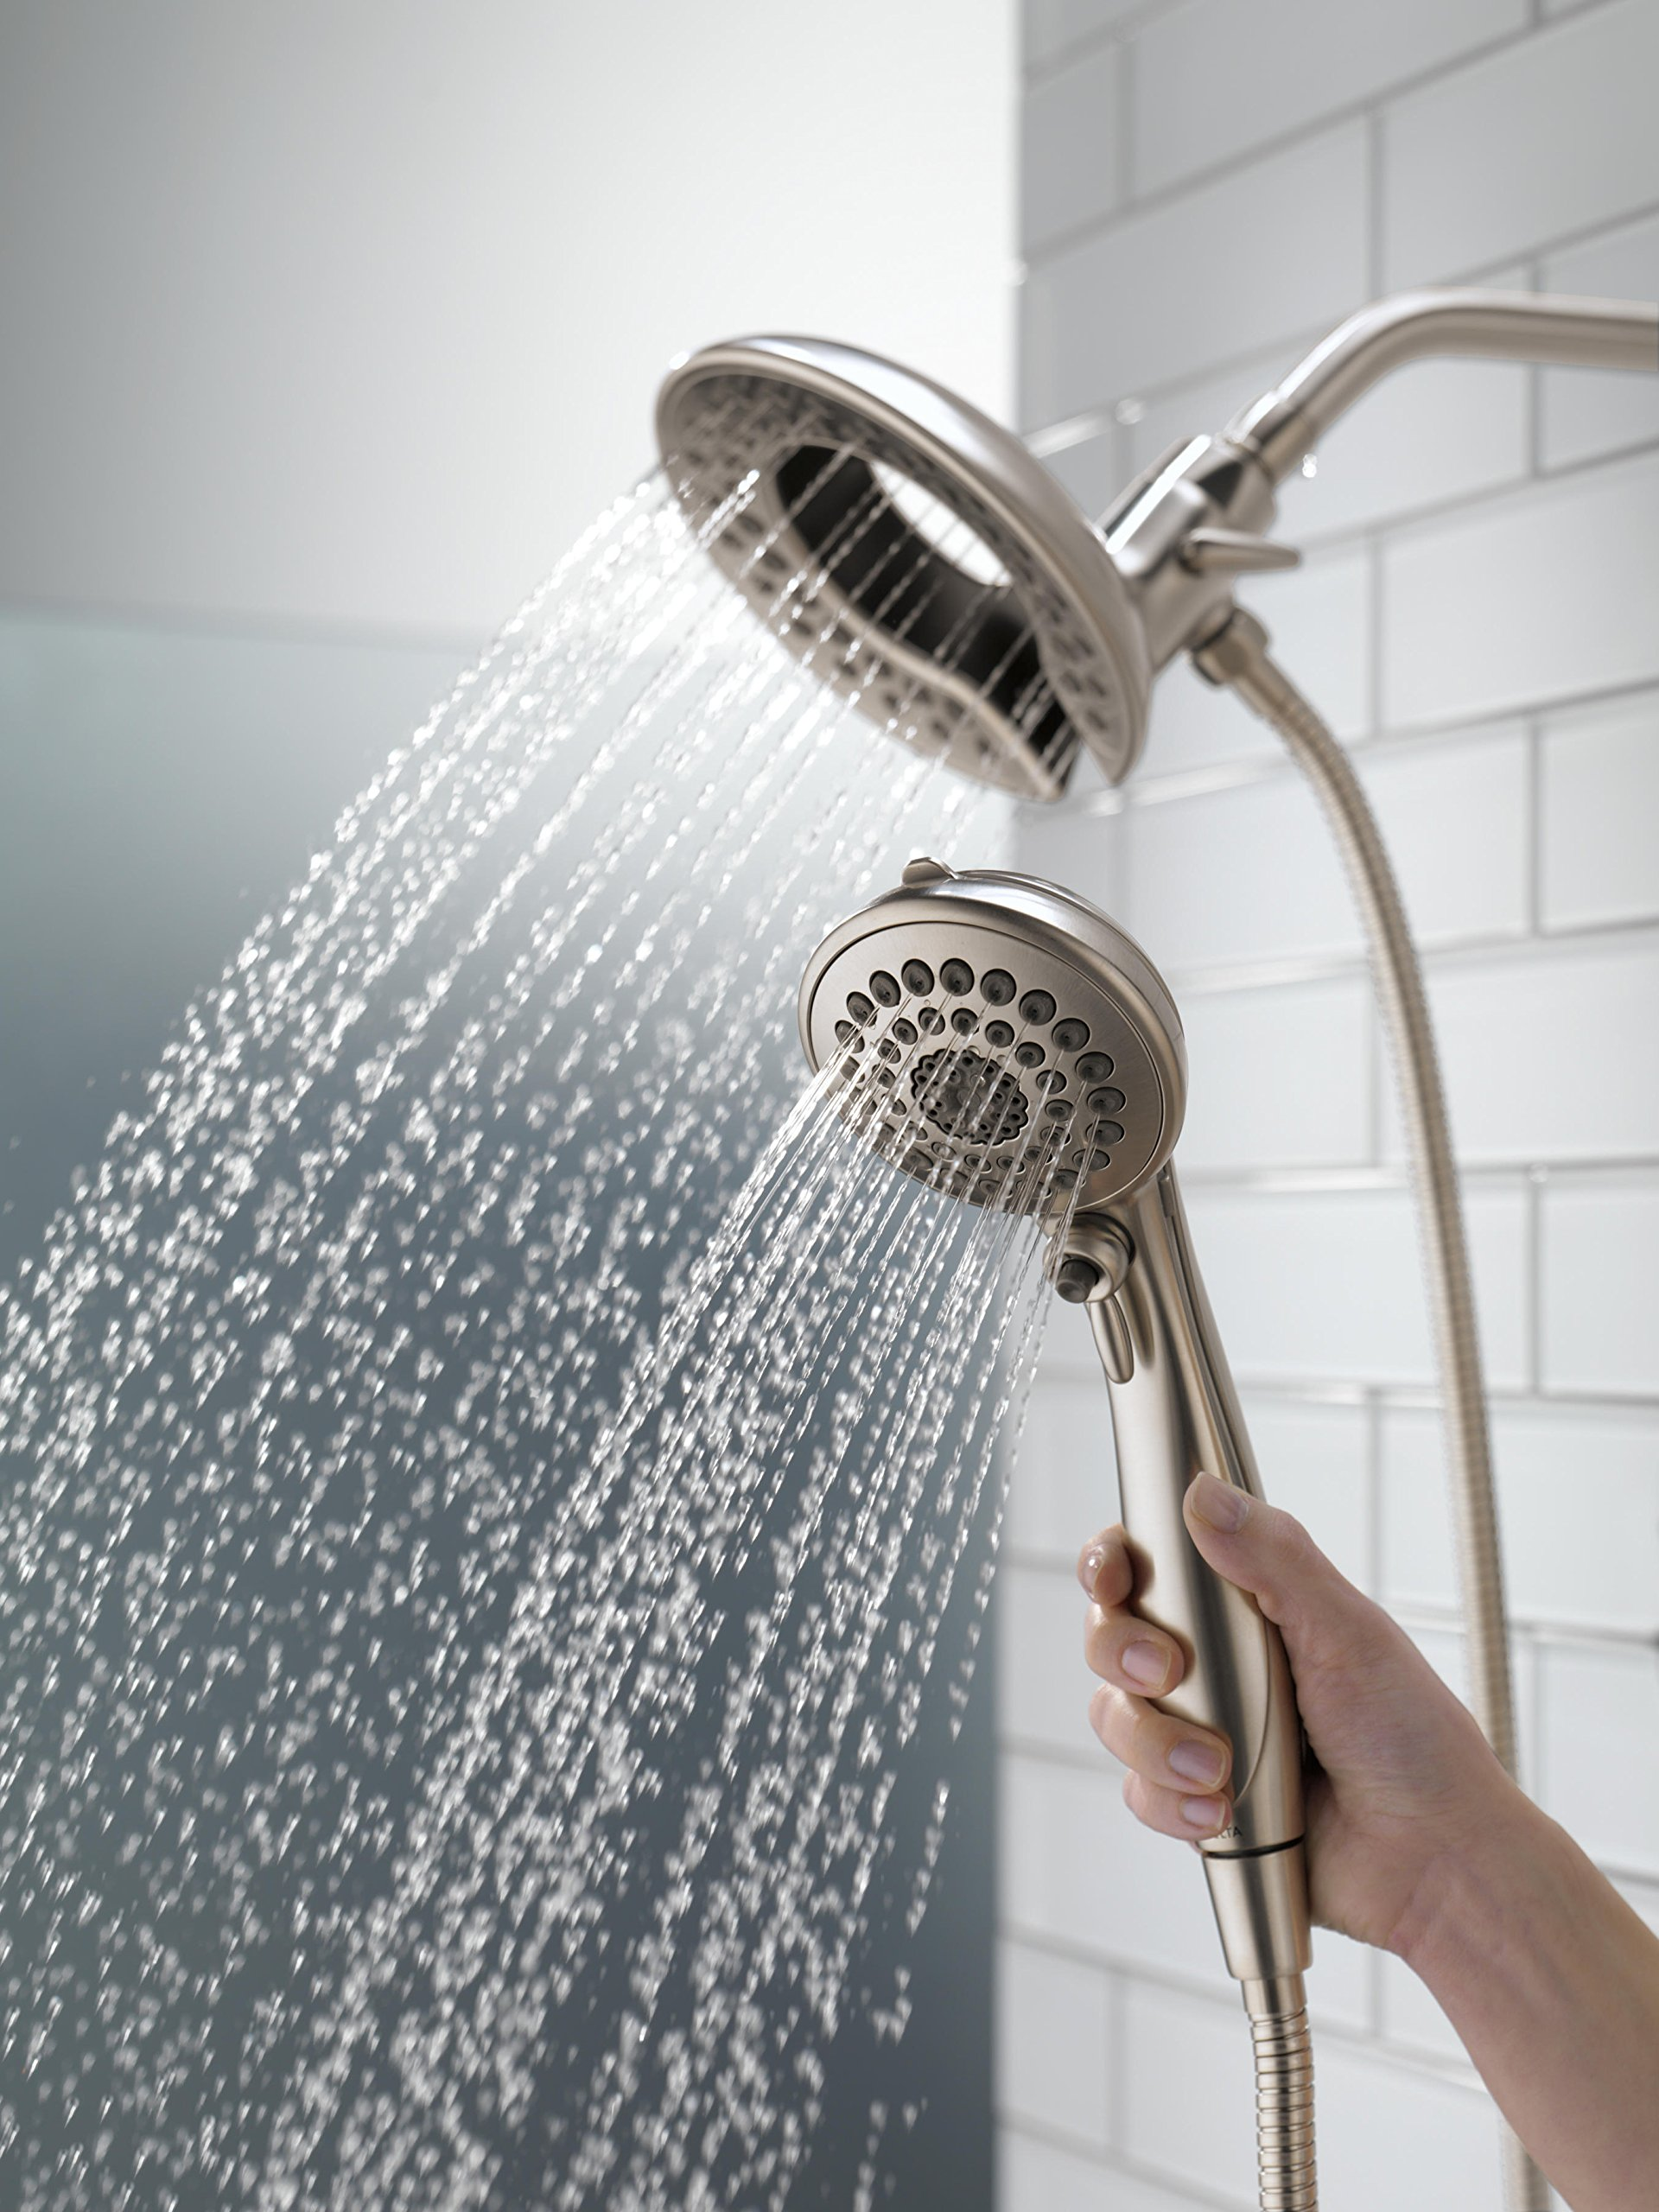 Delta 58569-SS-PK 5-Spray Touch Clean In2ition 2-in-1 Hand Held Shower Head with Hose, Stainless by DELTA FAUCET (Image #2)